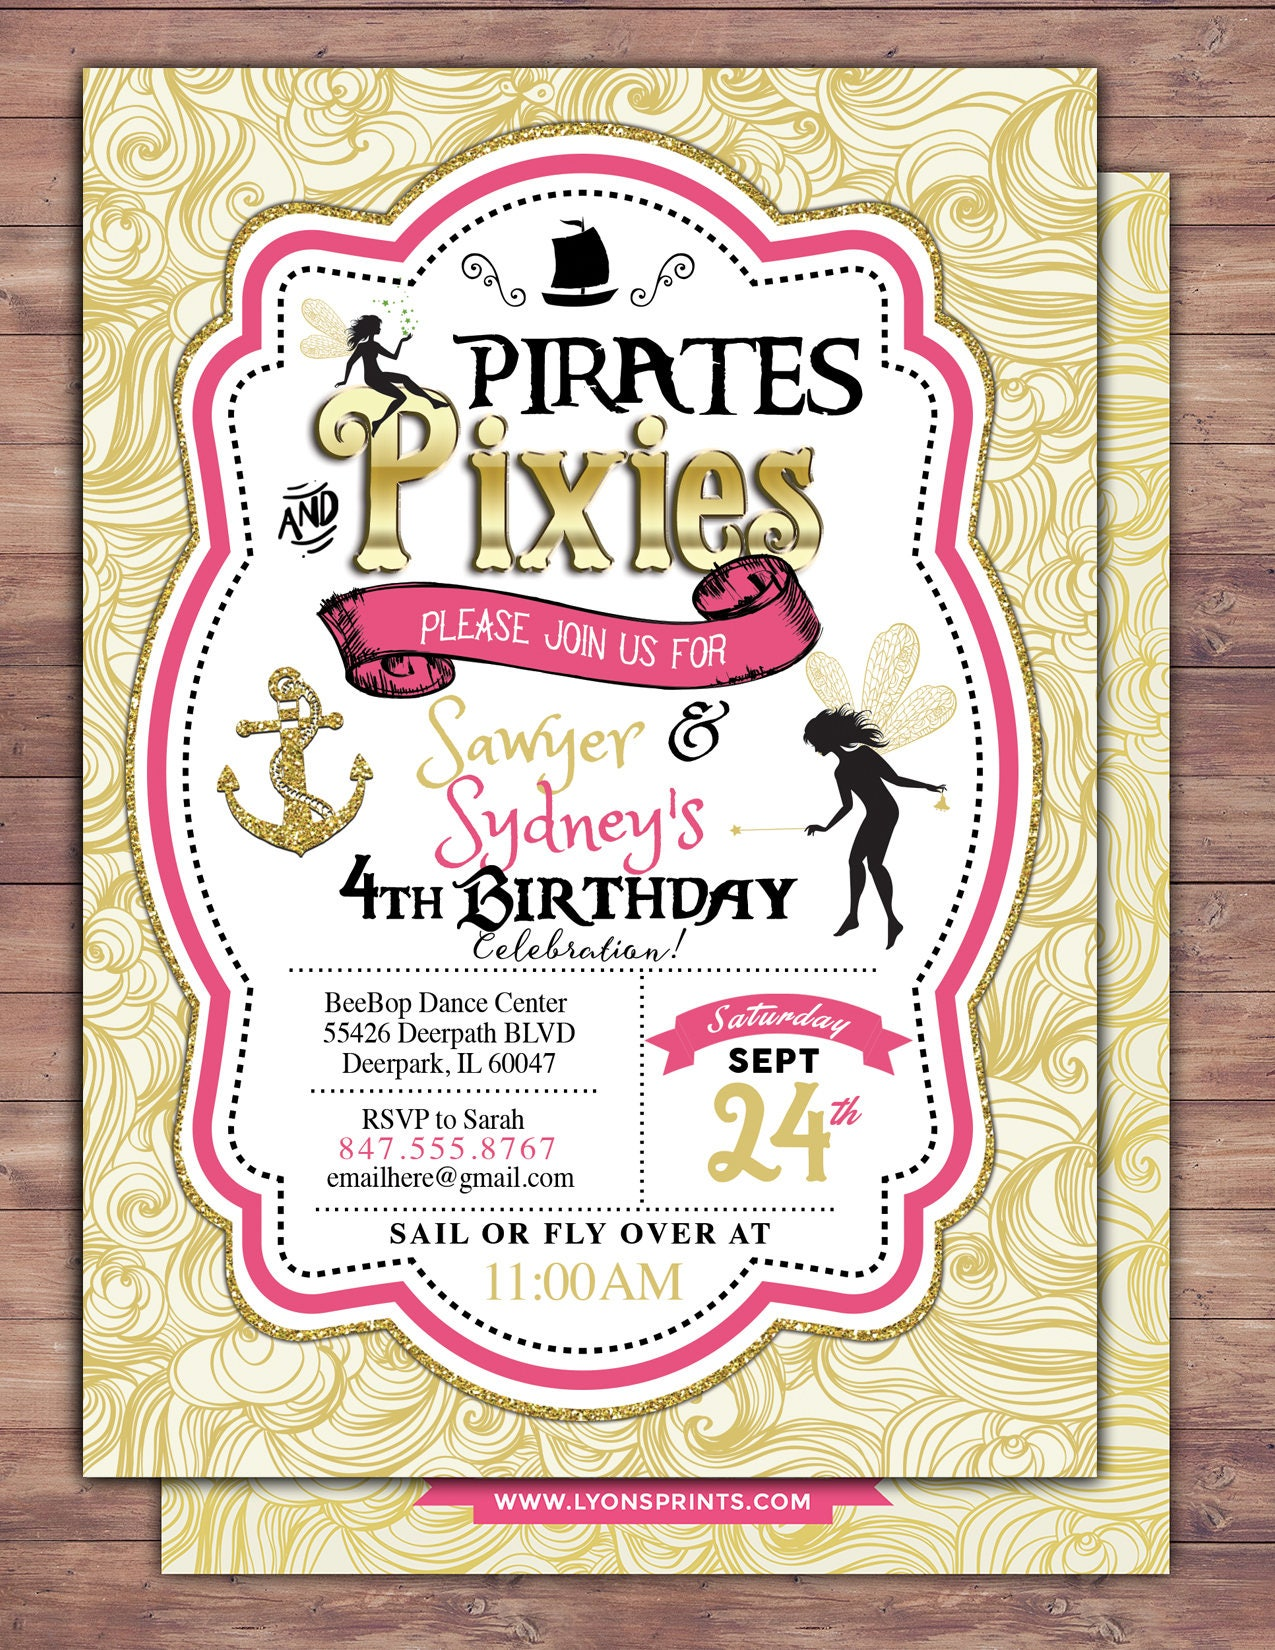 Pirates and Pixie, Party Invitations, Pirate, Princess, Pixie ...